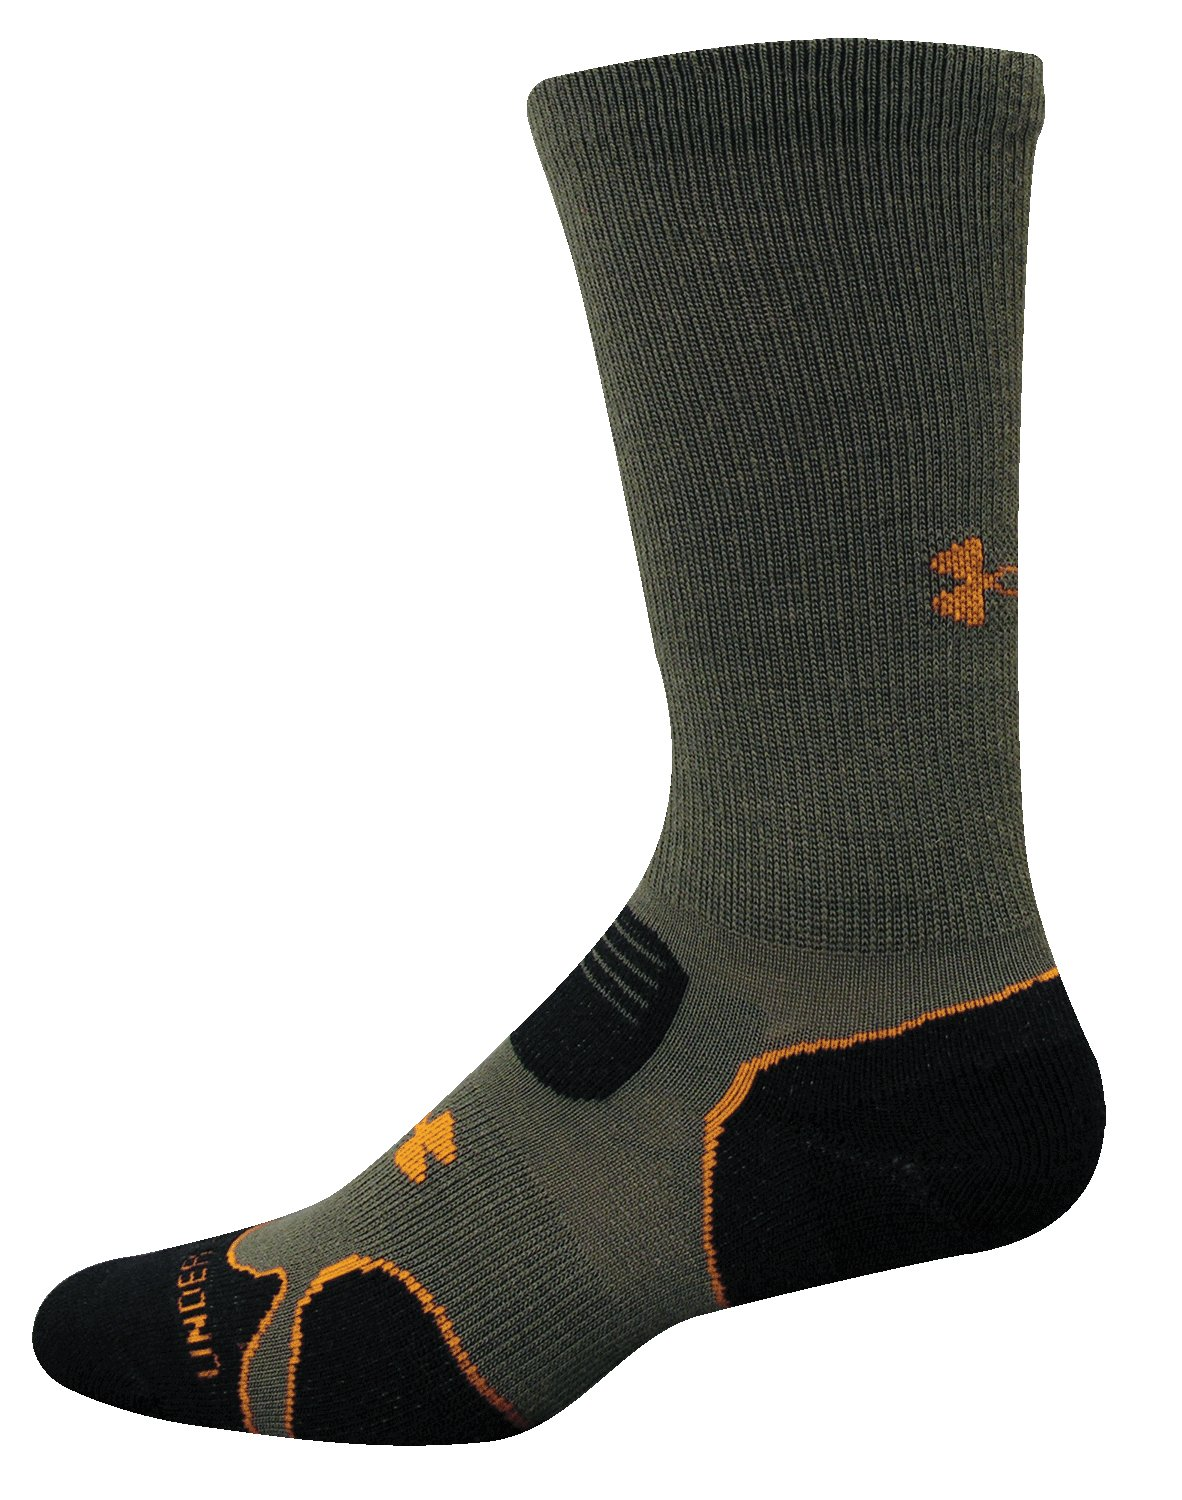 Men's Hitch Lite Cushion Boot Socks, Sage, zoomed image